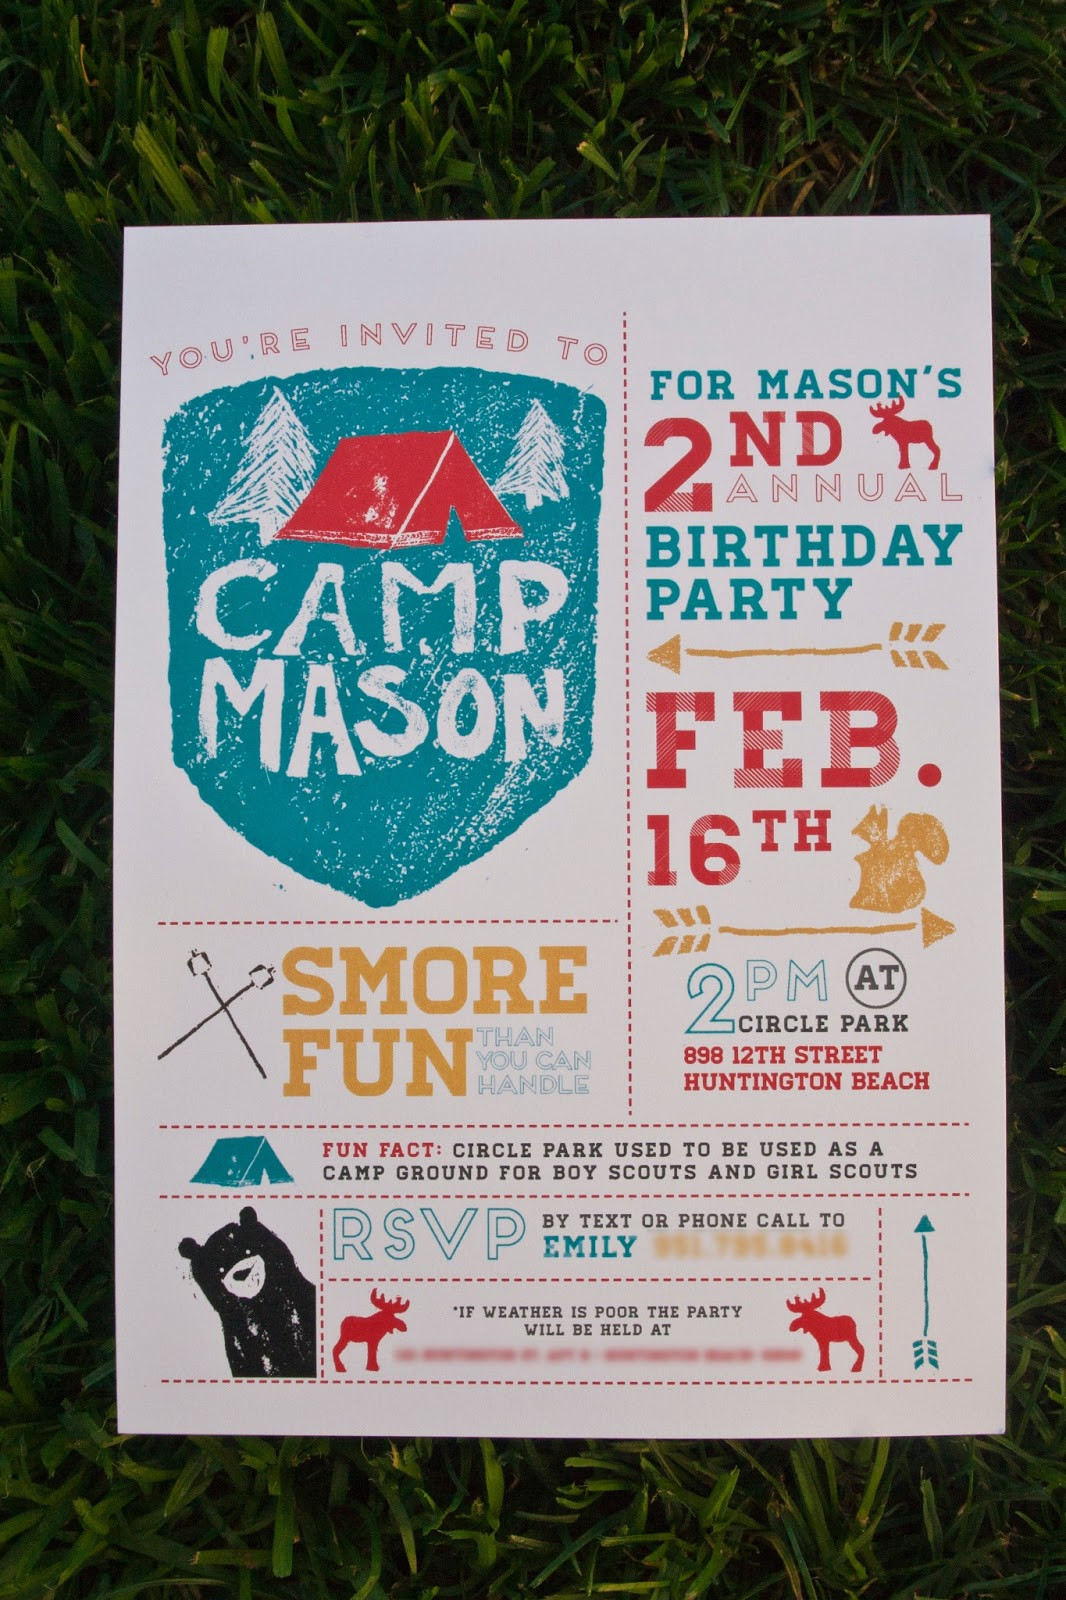 Best ideas about Camping Birthday Party Invitations . Save or Pin emily camp design design fancy Camping Party Invitation Now.